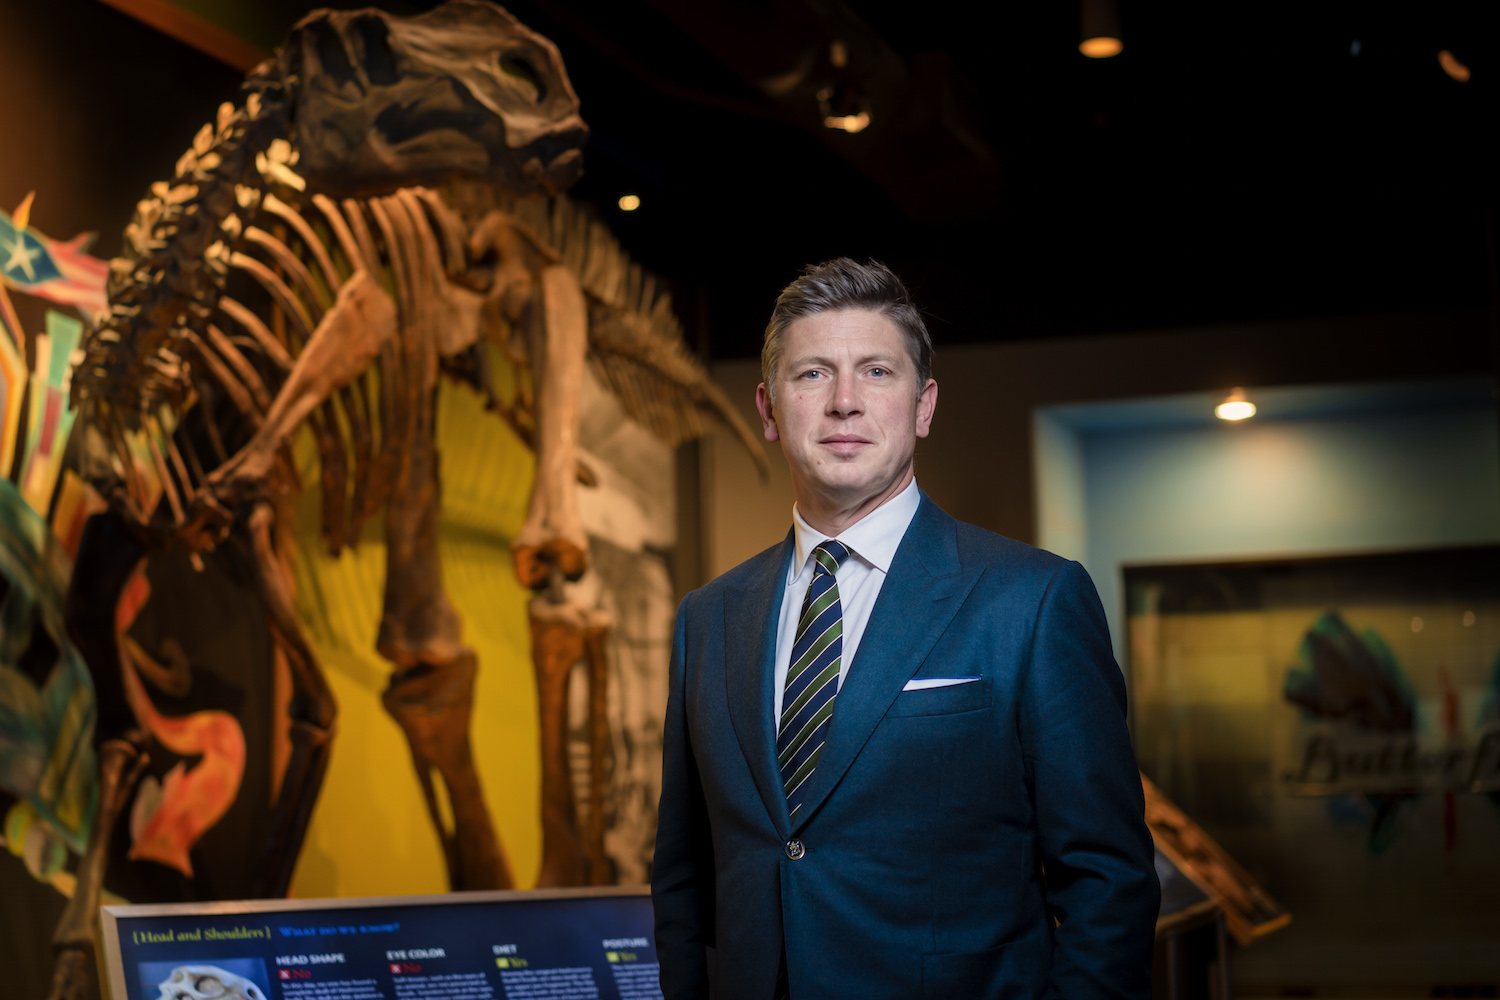 Scott Cooper, PhD, President and CEO, The Academy of Natural Sciences of Drexel University. Photo by: Jeff Fusco